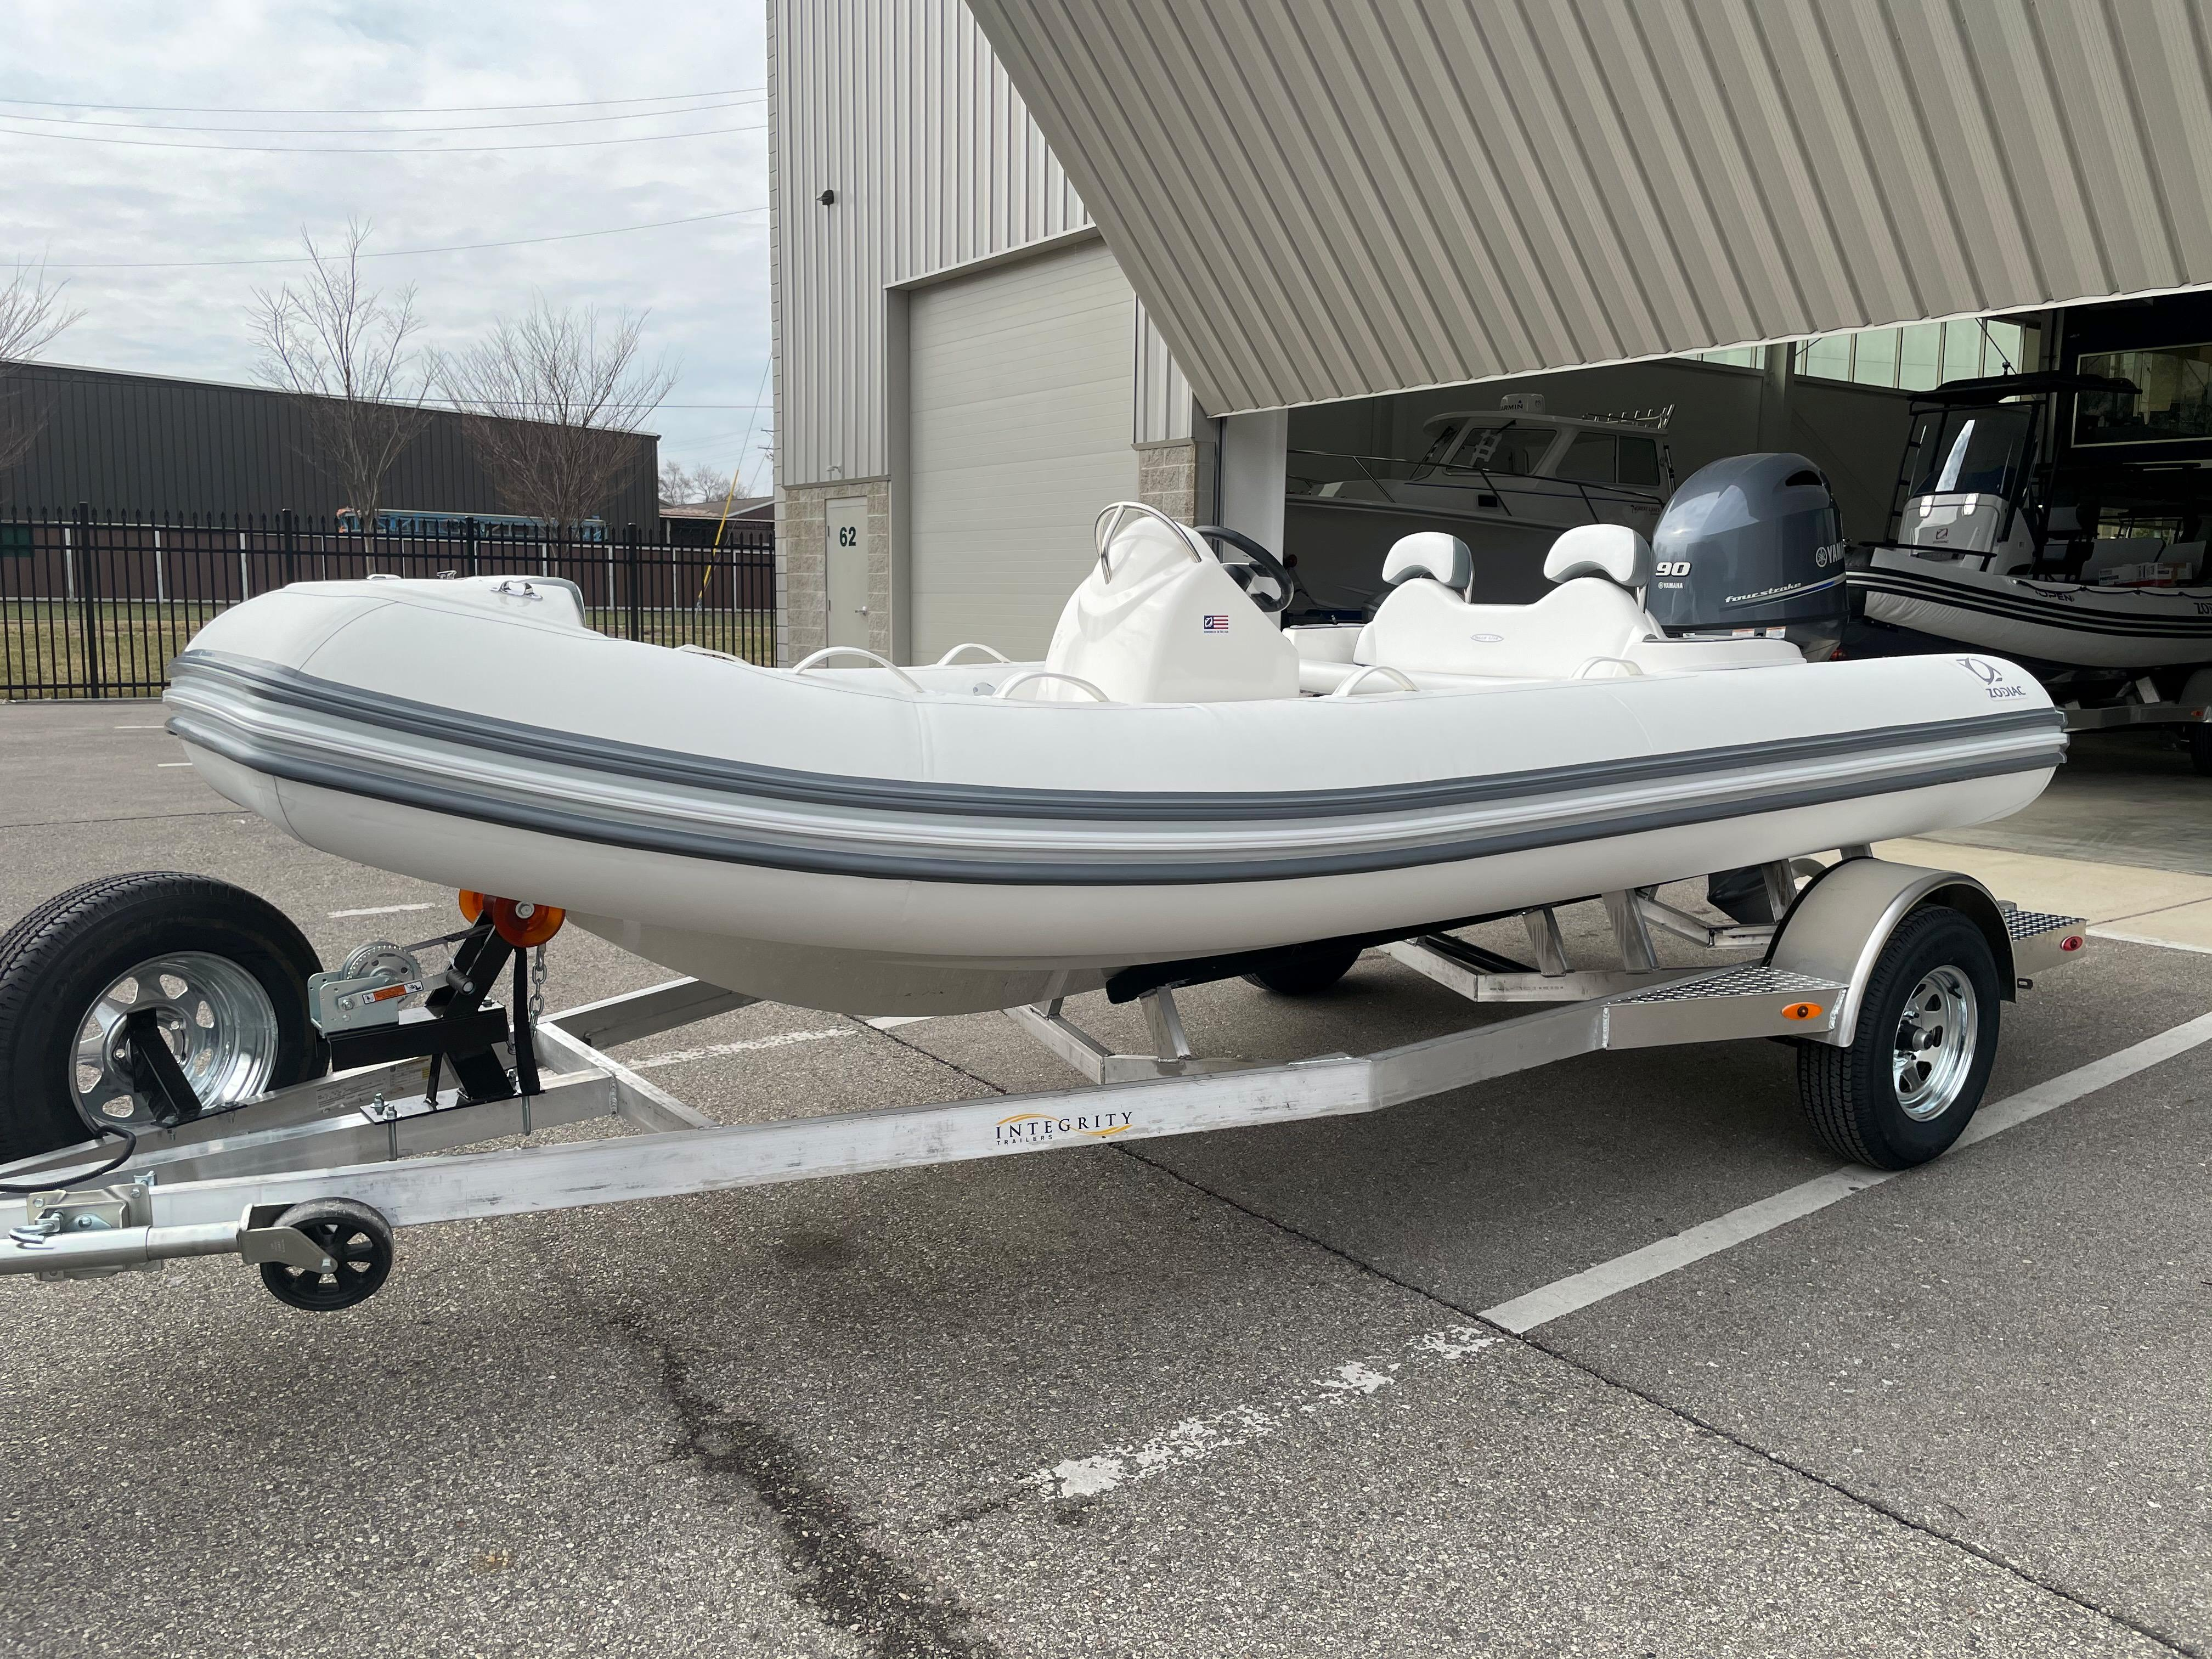 2022 Zodiac Yachtline 490 Deluxe NEO GL Edition 90hp On Order, Image 7